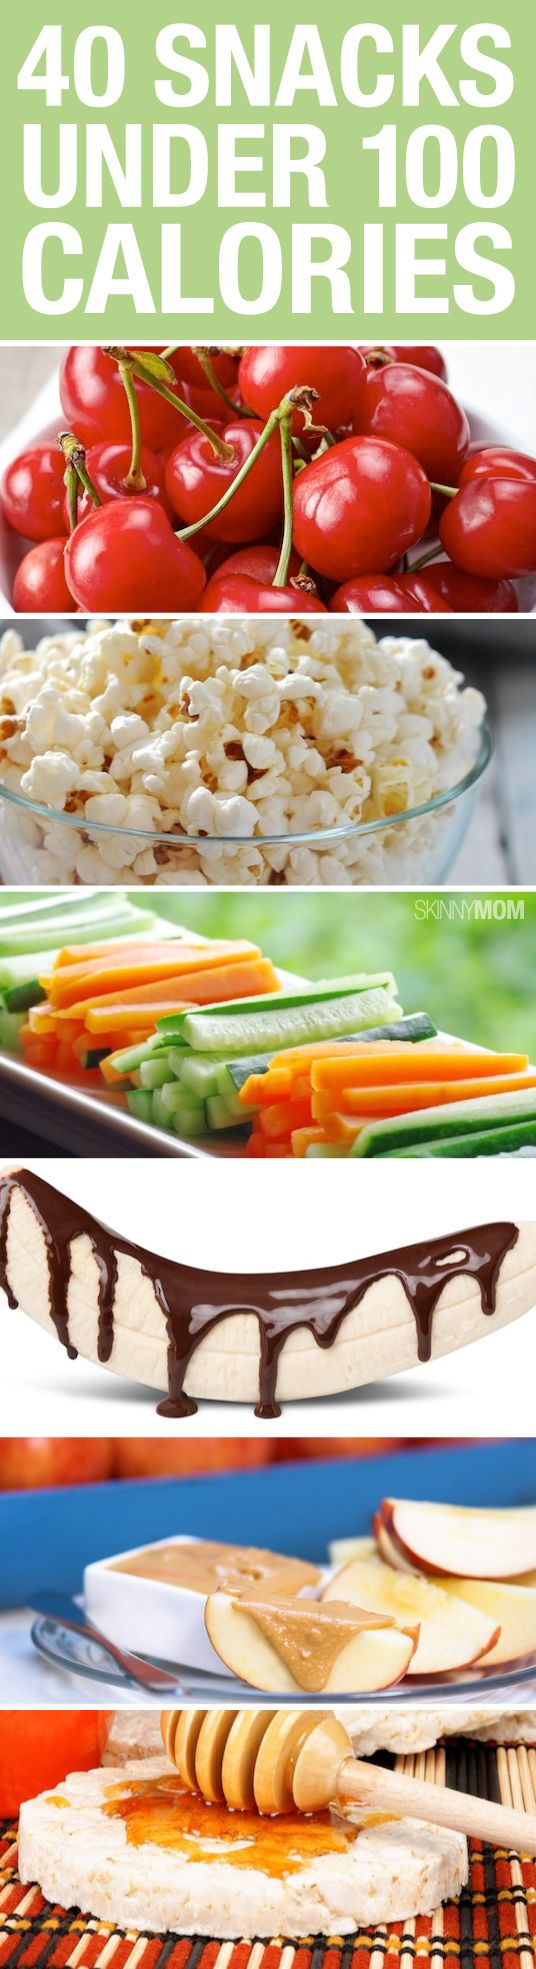 Great snack ideas for under 100 calories #diet http://slimmingtipsblog.com/how-to-lose-weight-fast/